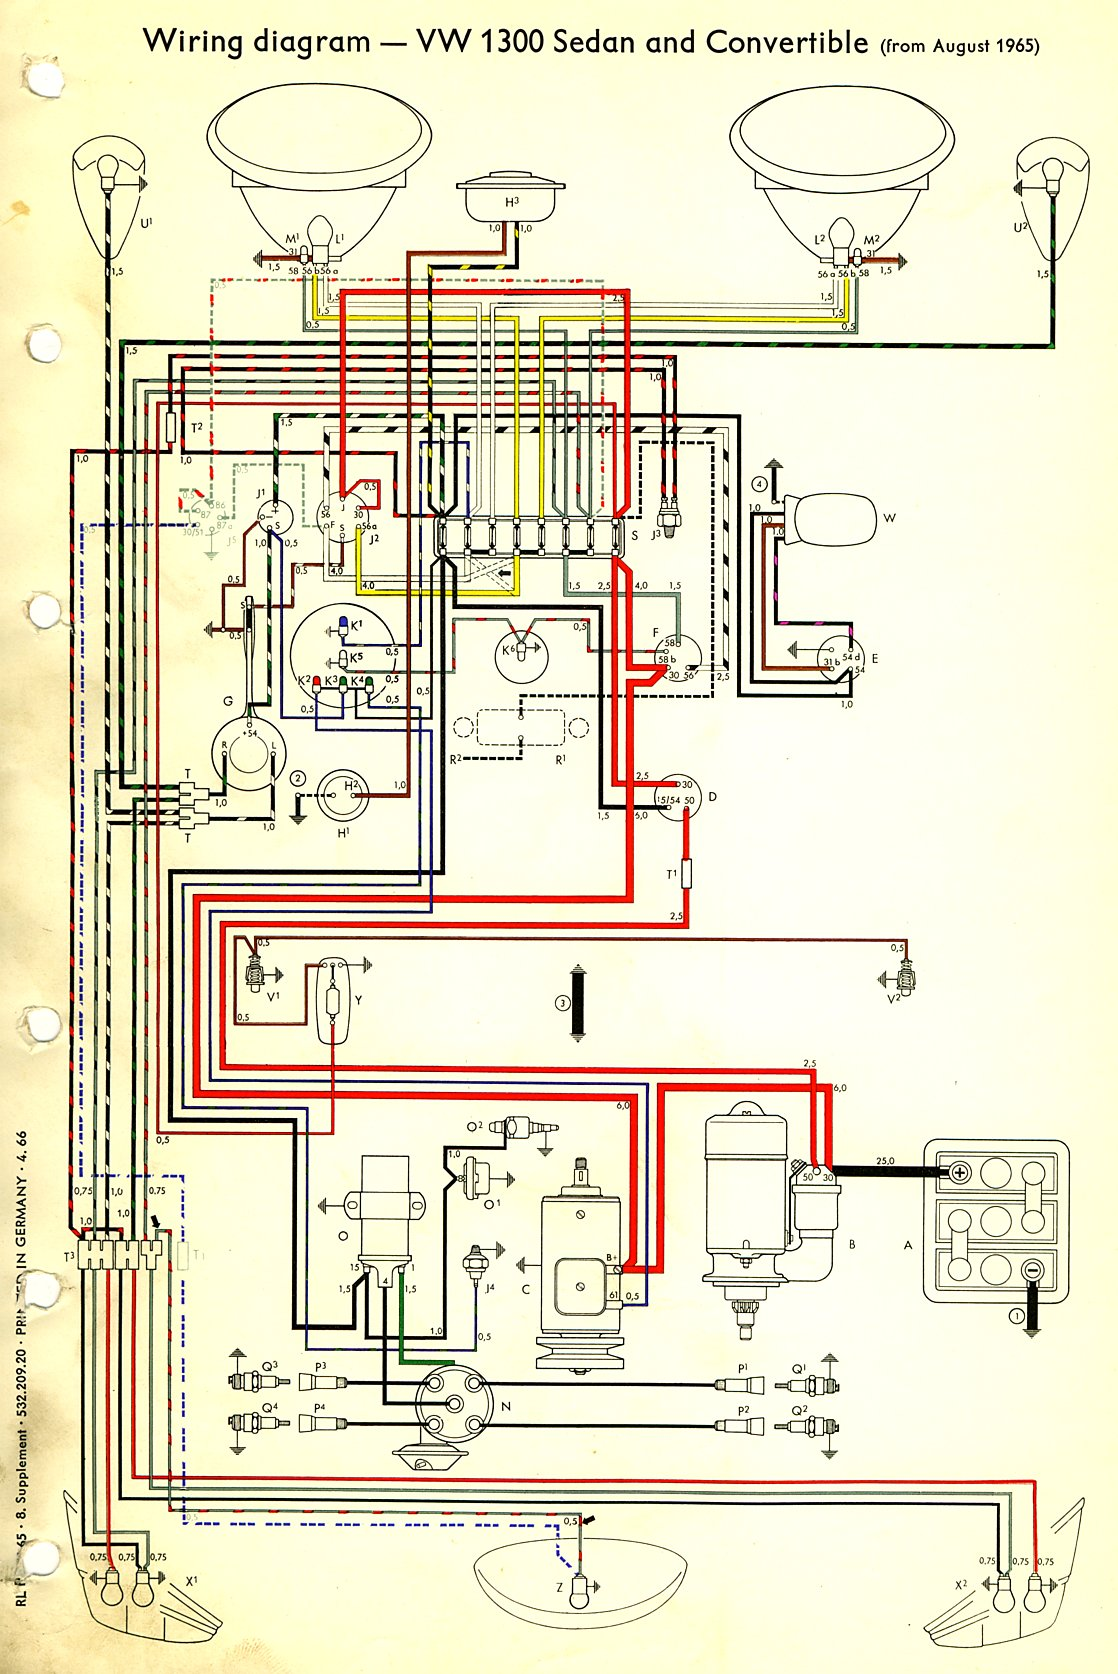 1966 vw beetle wiring diagram wire center \u2022 vw buggy wiring-diagram 1966 beetle wiring diagram thegoldenbug com rh thegoldenbug com 1966 vw beetle wiper motor wiring diagram 1967 vw beetle wiring diagram